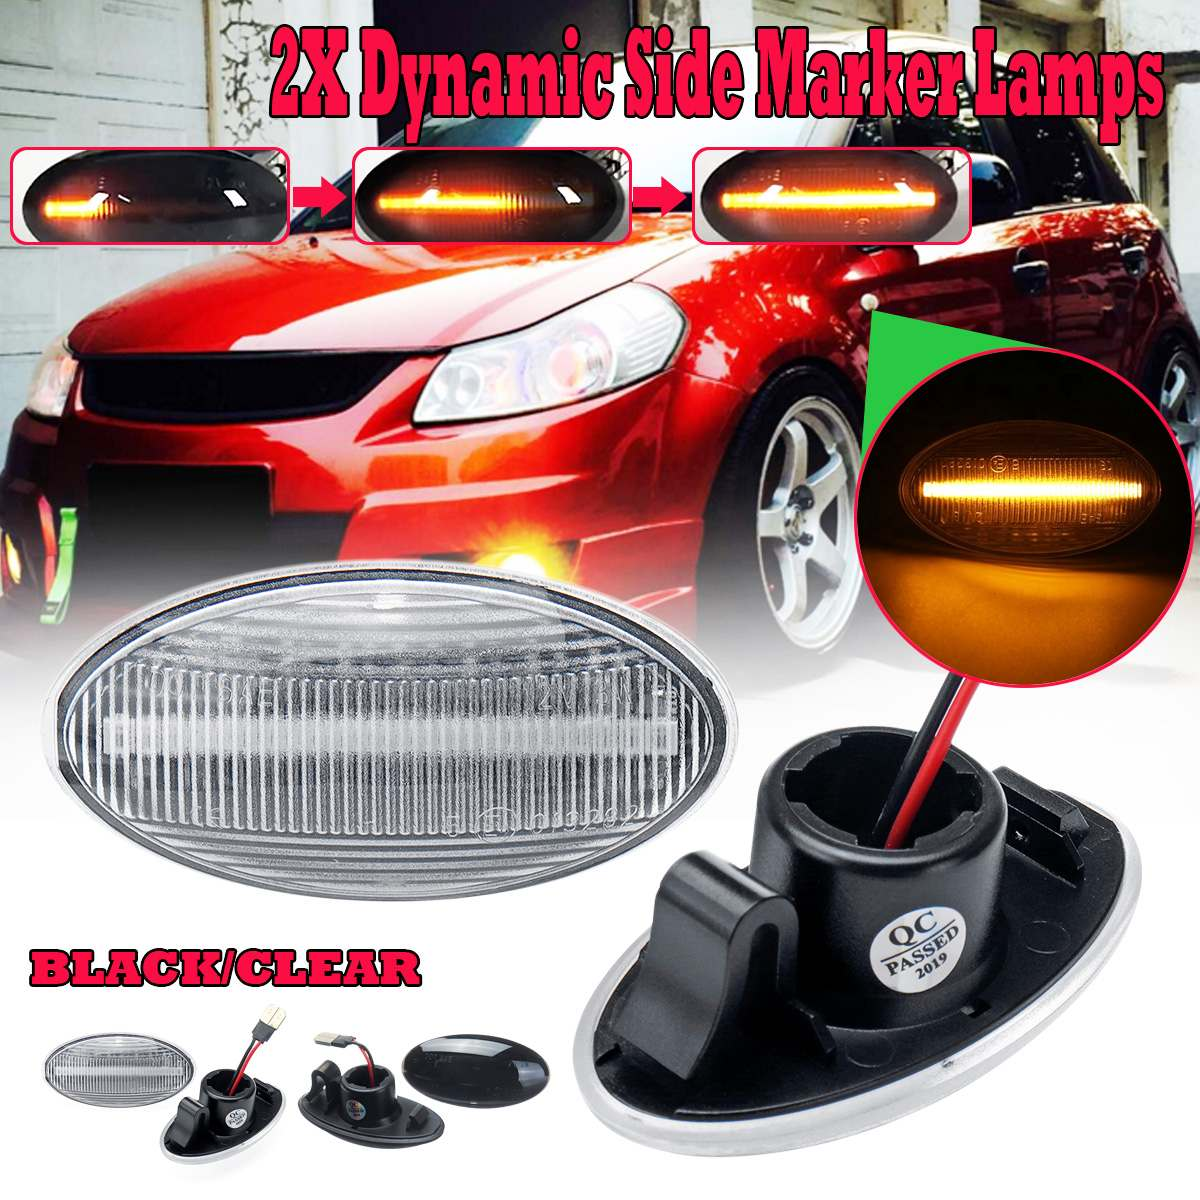 2pcs Dynamic LED Side Marker Light Indicator Repeater Turn Signal Lamp For Suzuki Swift Alto SX4 Jimmy Vitar2pcs Dynamic LED Side Marker Light Indicator Repeater Turn Signal Lamp For Suzuki Swift Alto SX4 Jimmy Vitar